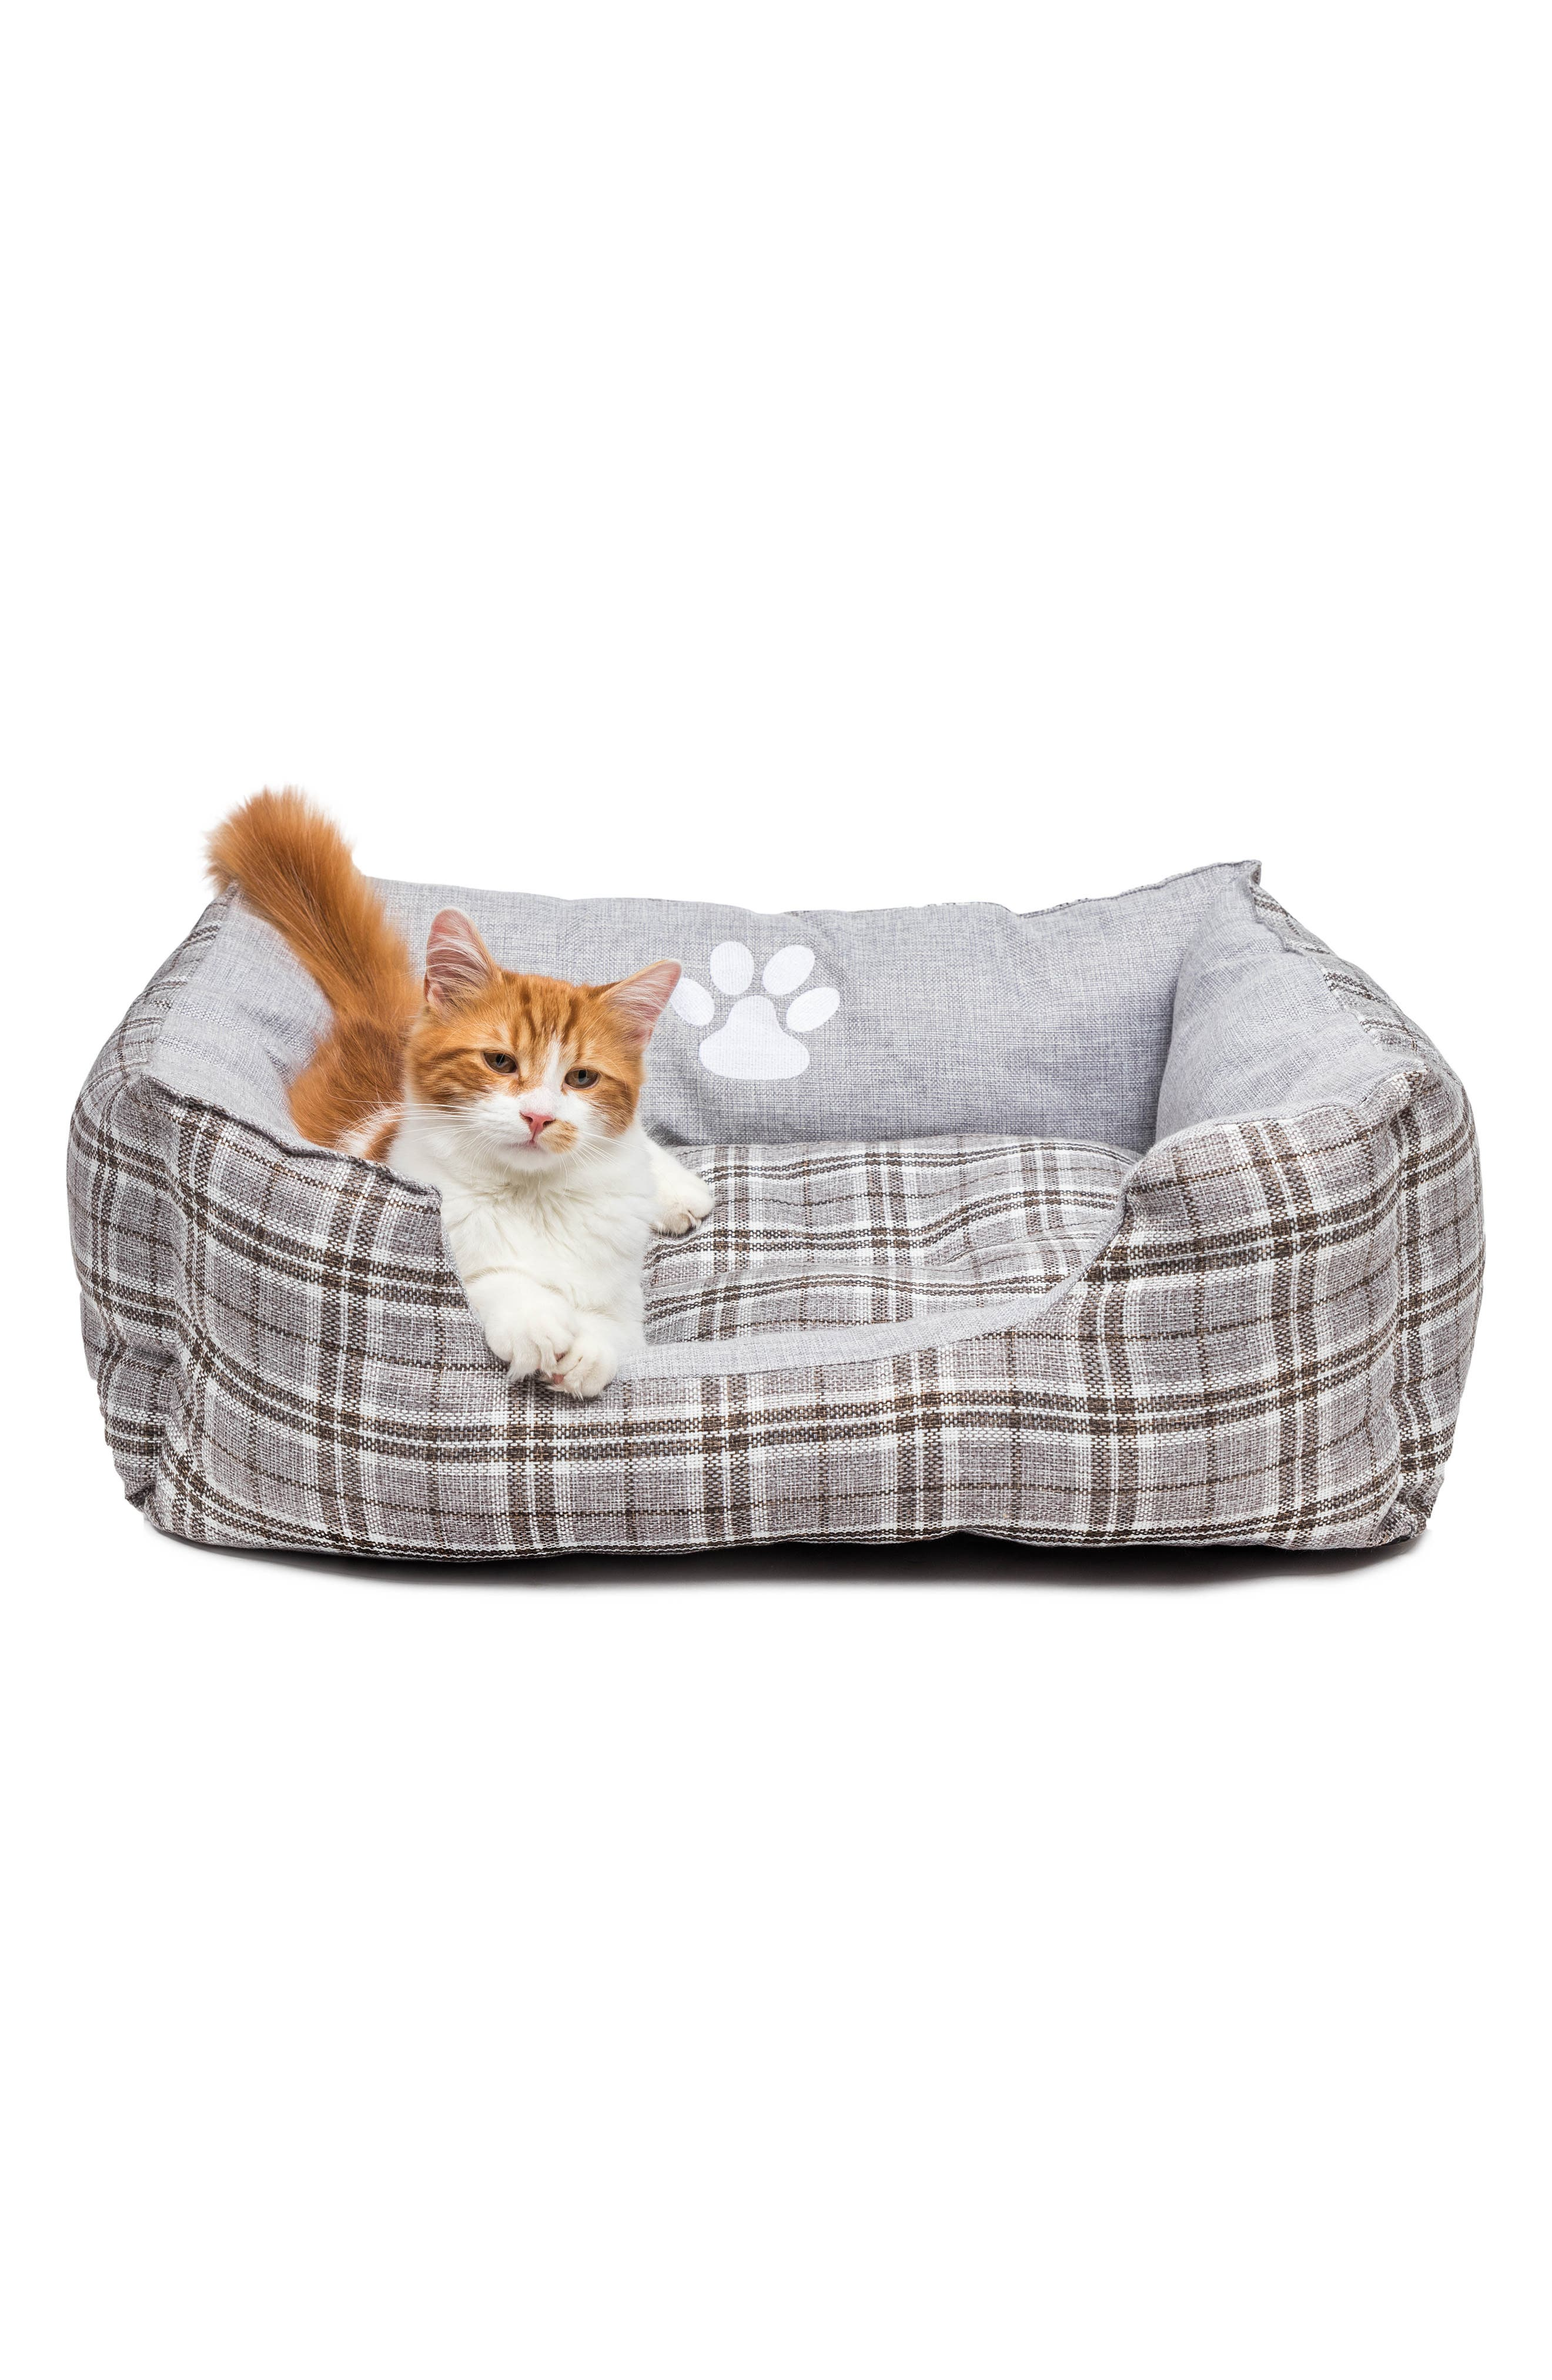 Harlee Large Square Pet Bed,                             Alternate thumbnail 2, color,                             020